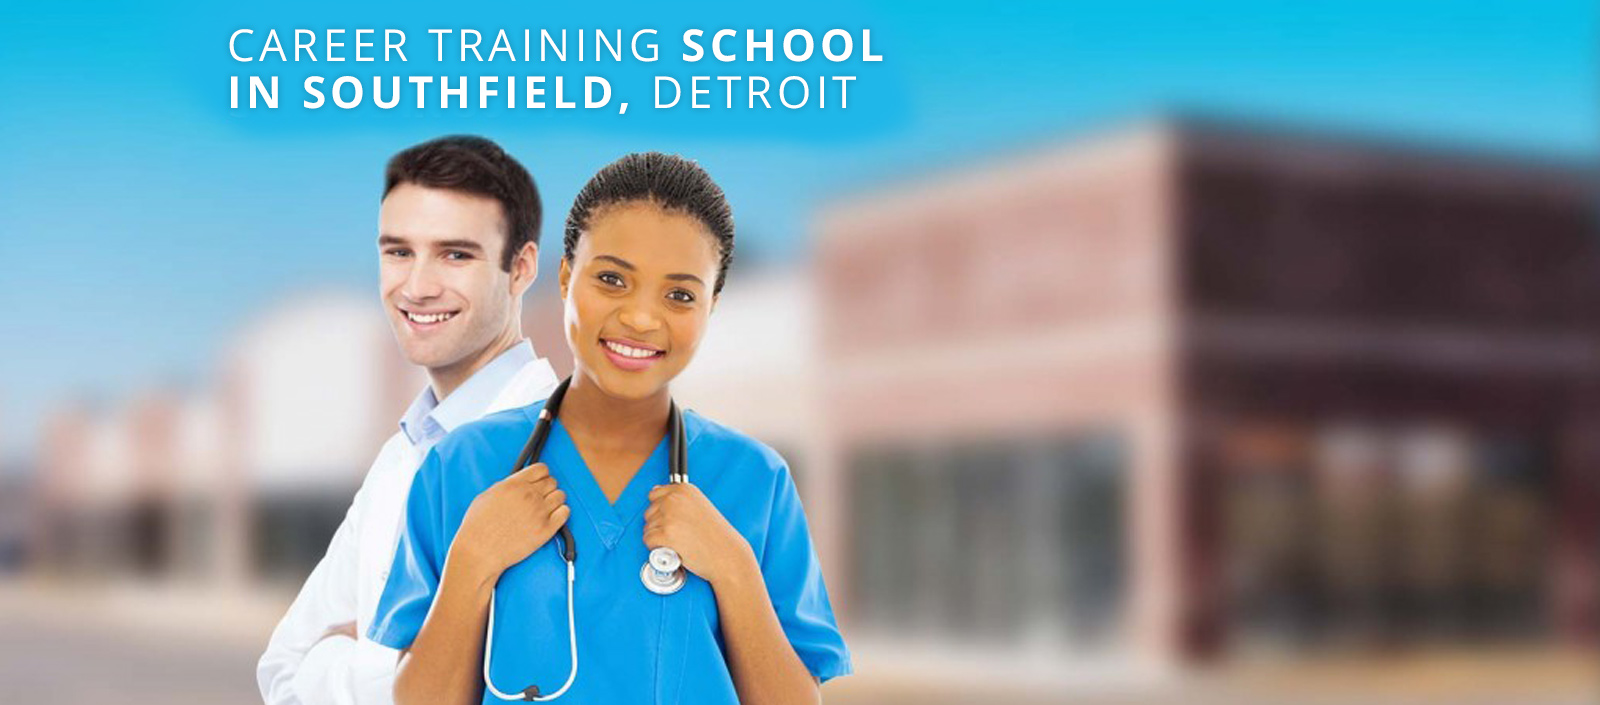 Medical Career Training